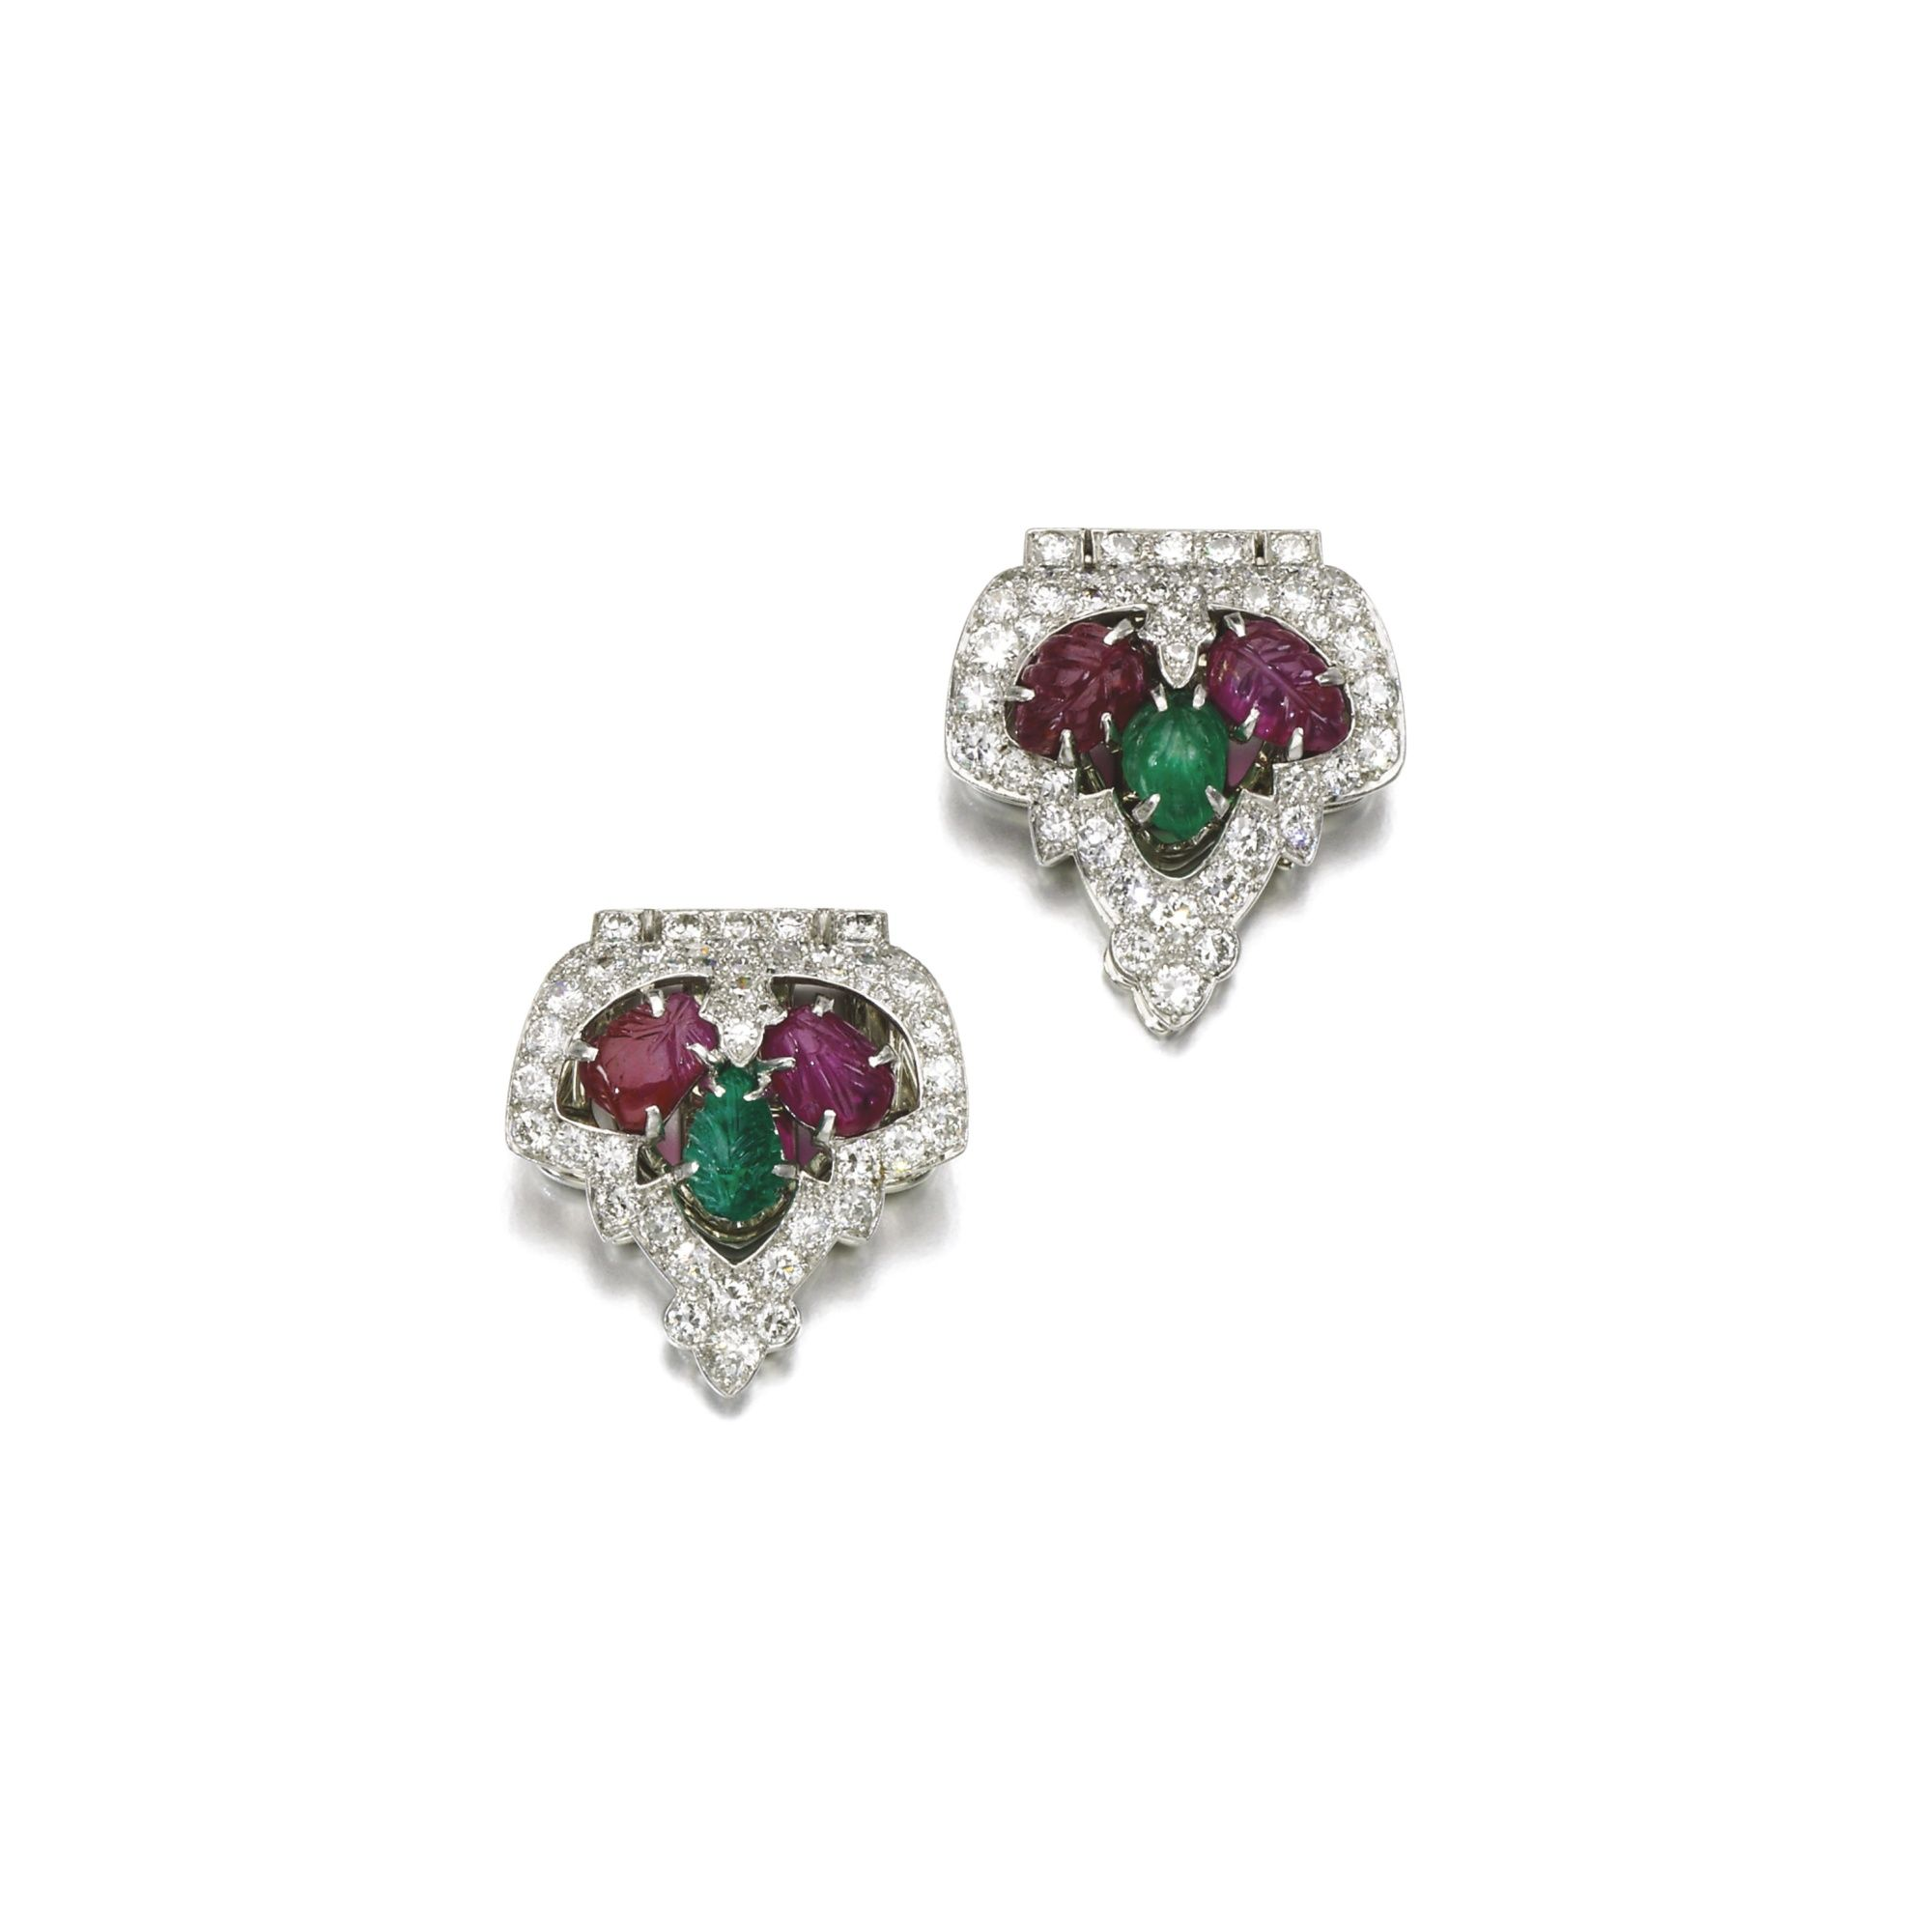 Pair of ruby, emerald and diamond clips, 'Tutti Frutti', Cartier, circa 1925 Each of palmette design, set with a carved emerald and rubies, within a border of circular- and single-cut diamonds, each signed Cartier, one indistinctly numbered.